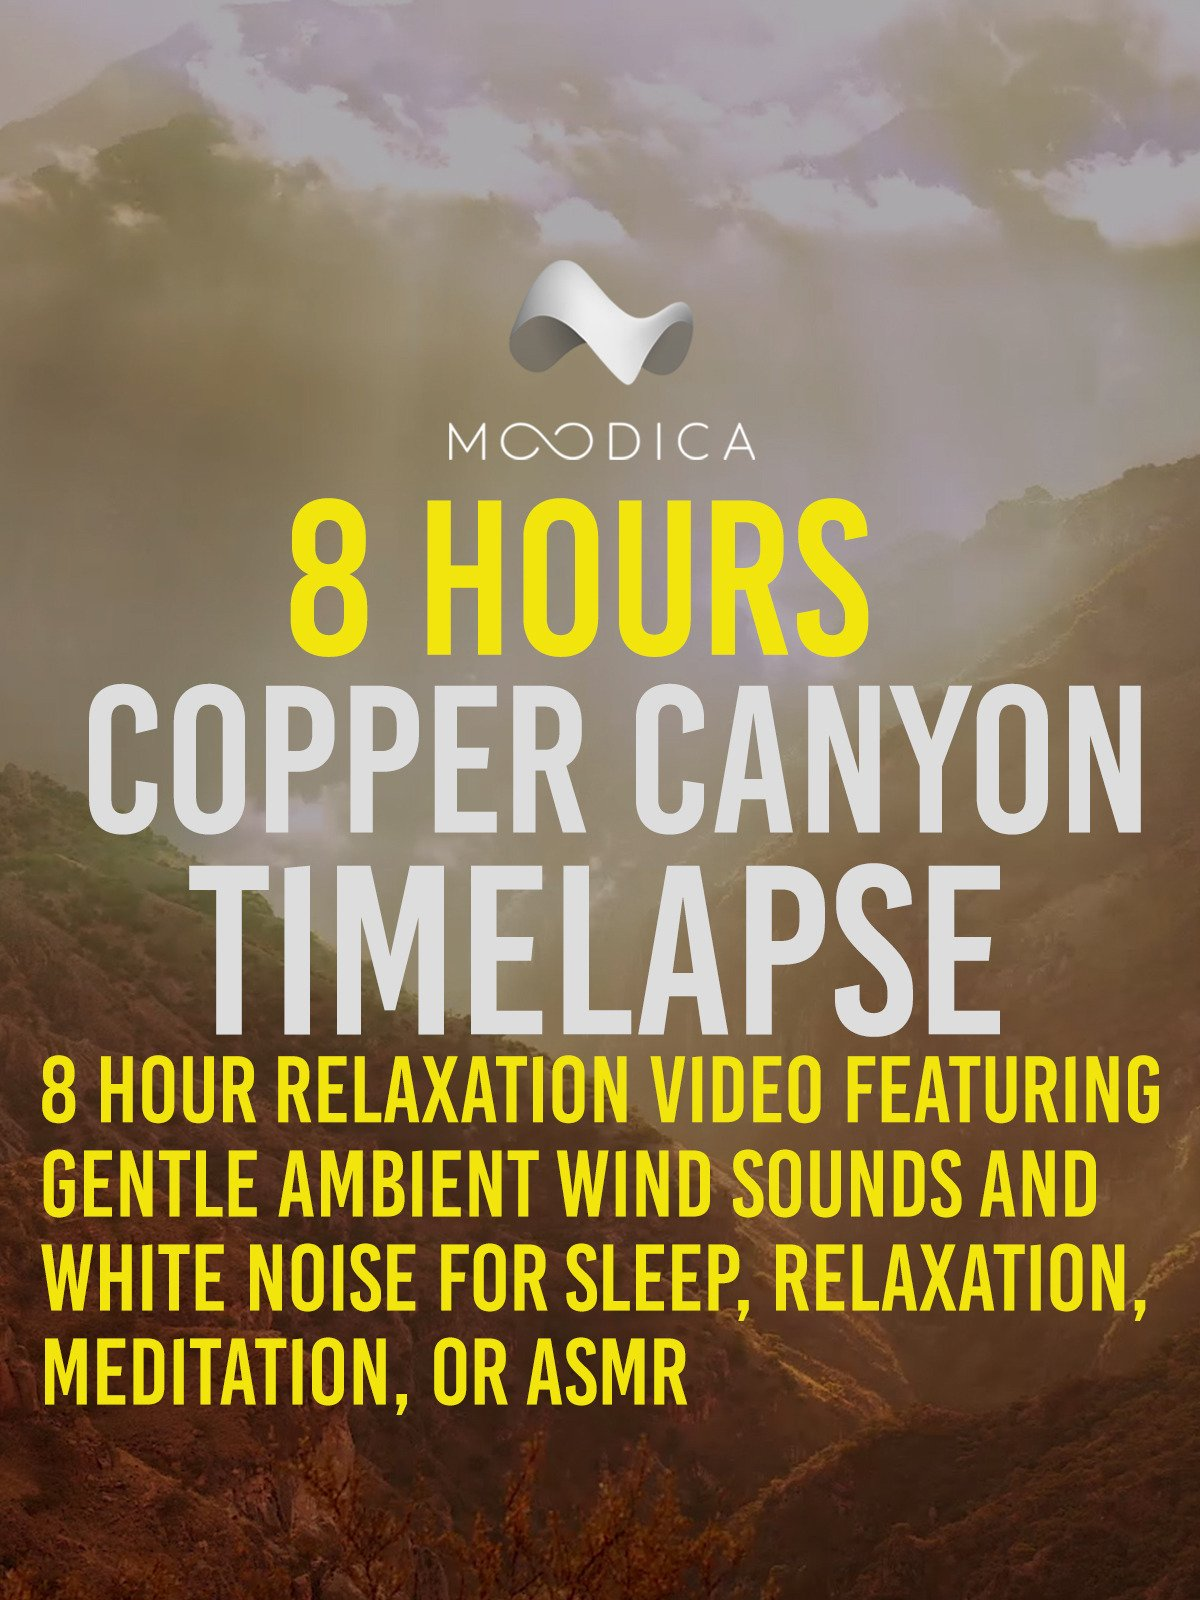 8 Hours: Copper Canyon Timelapse: 8 Hour Relaxation Video Featuring Gentle Ambient Wind Sounds and White Noise for Sleep, Relaxation, Meditation, or ASMR